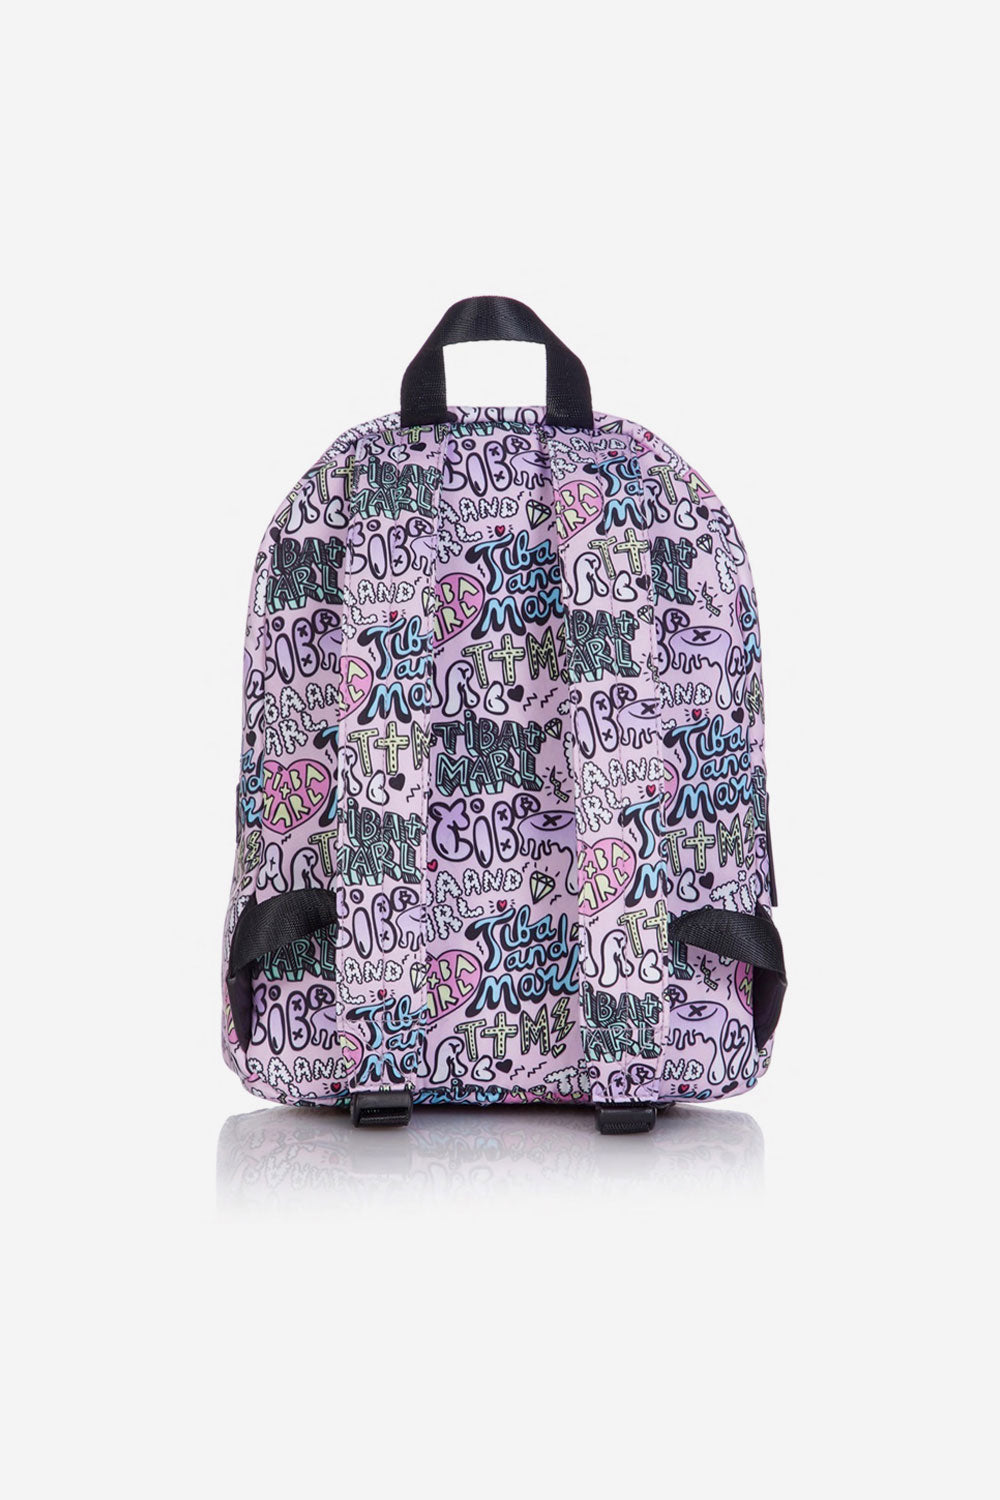 Tiba & Marl - Mini Elwood Kids 'Tiba Boom' Backpack